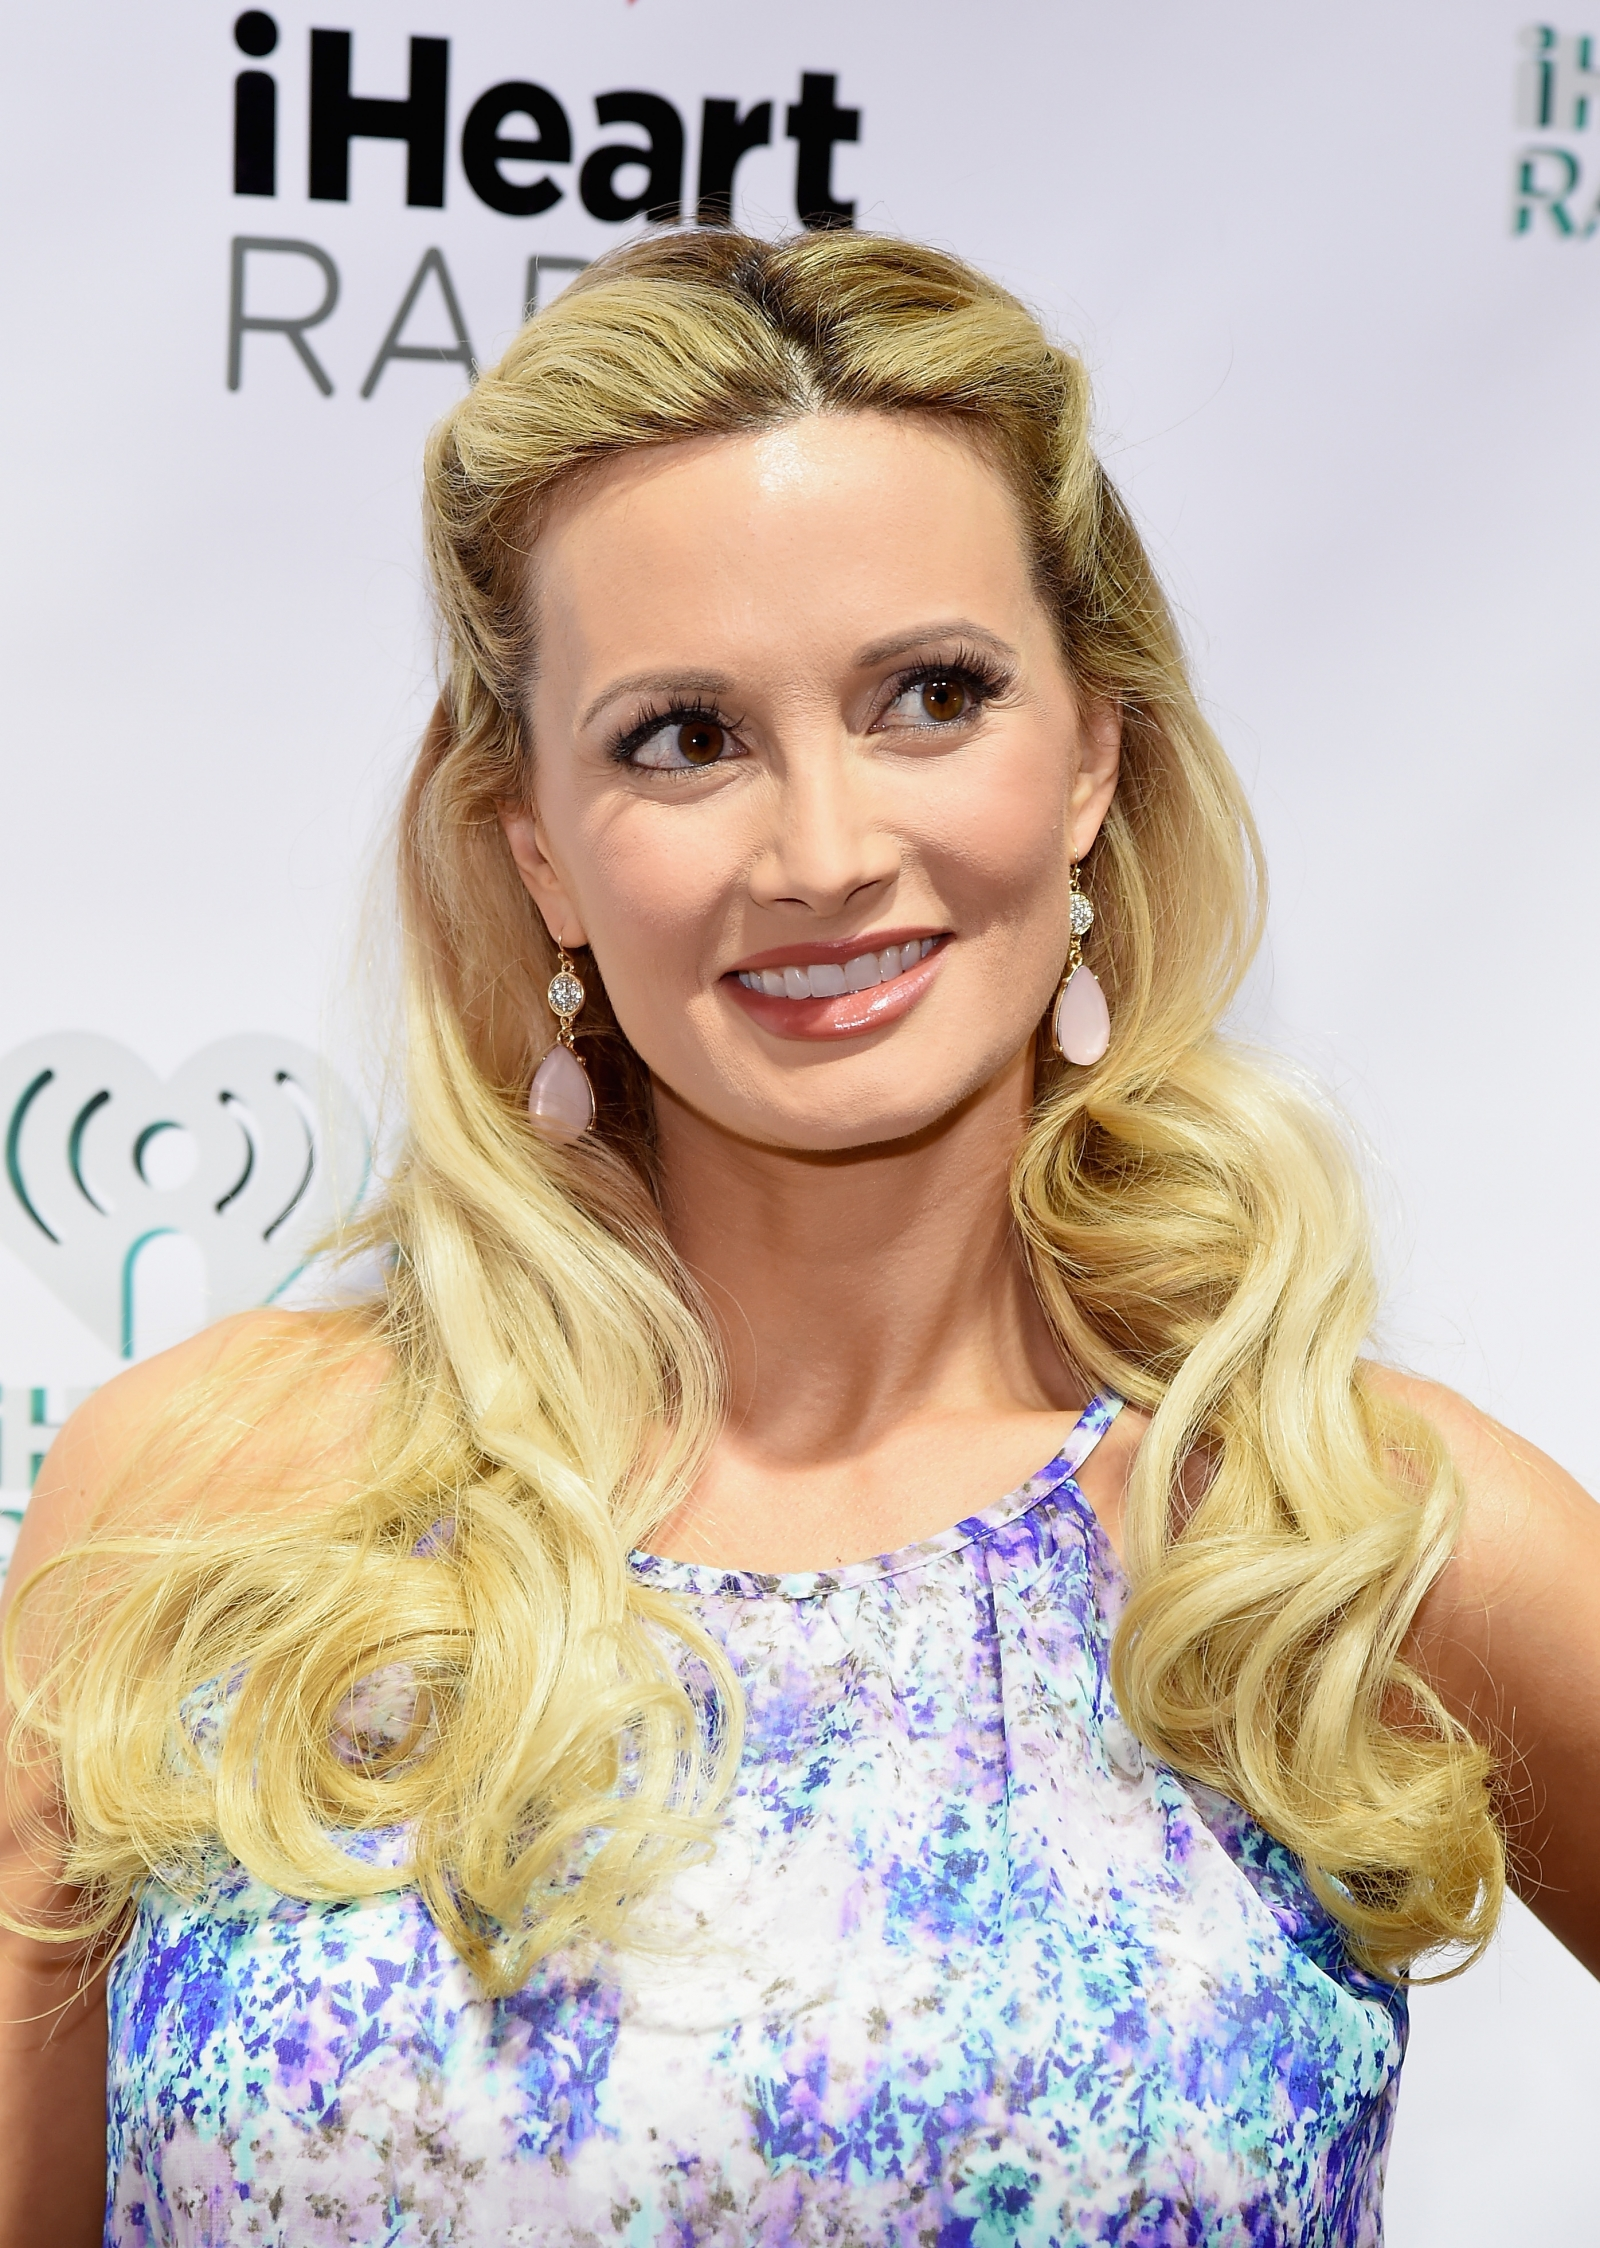 Former Playboy Bunny Holly Madison